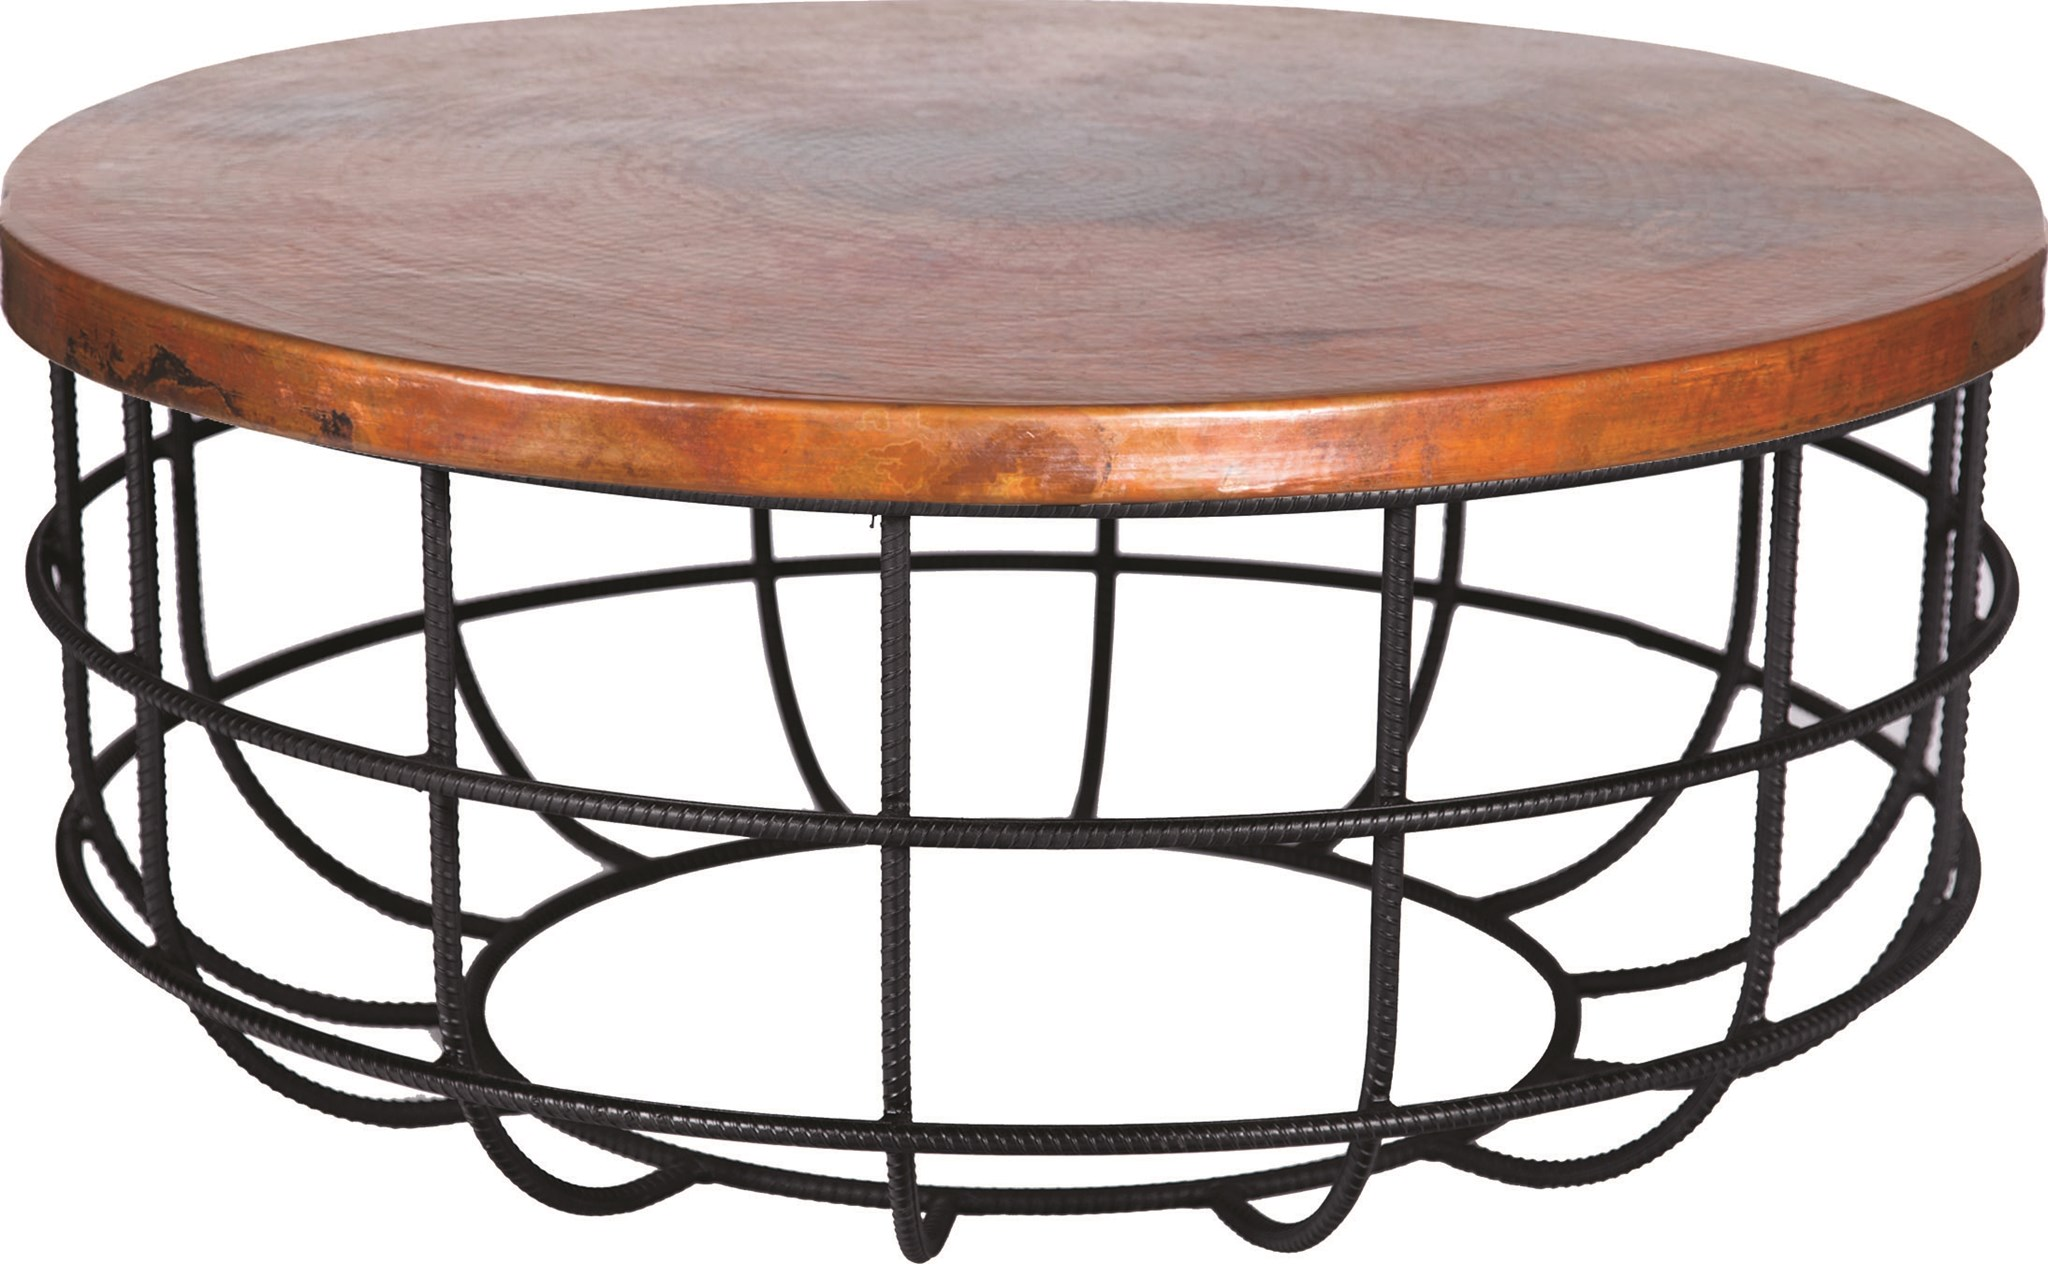 - Axel Coffee Table In Rebar With Round Hammered Copper Top